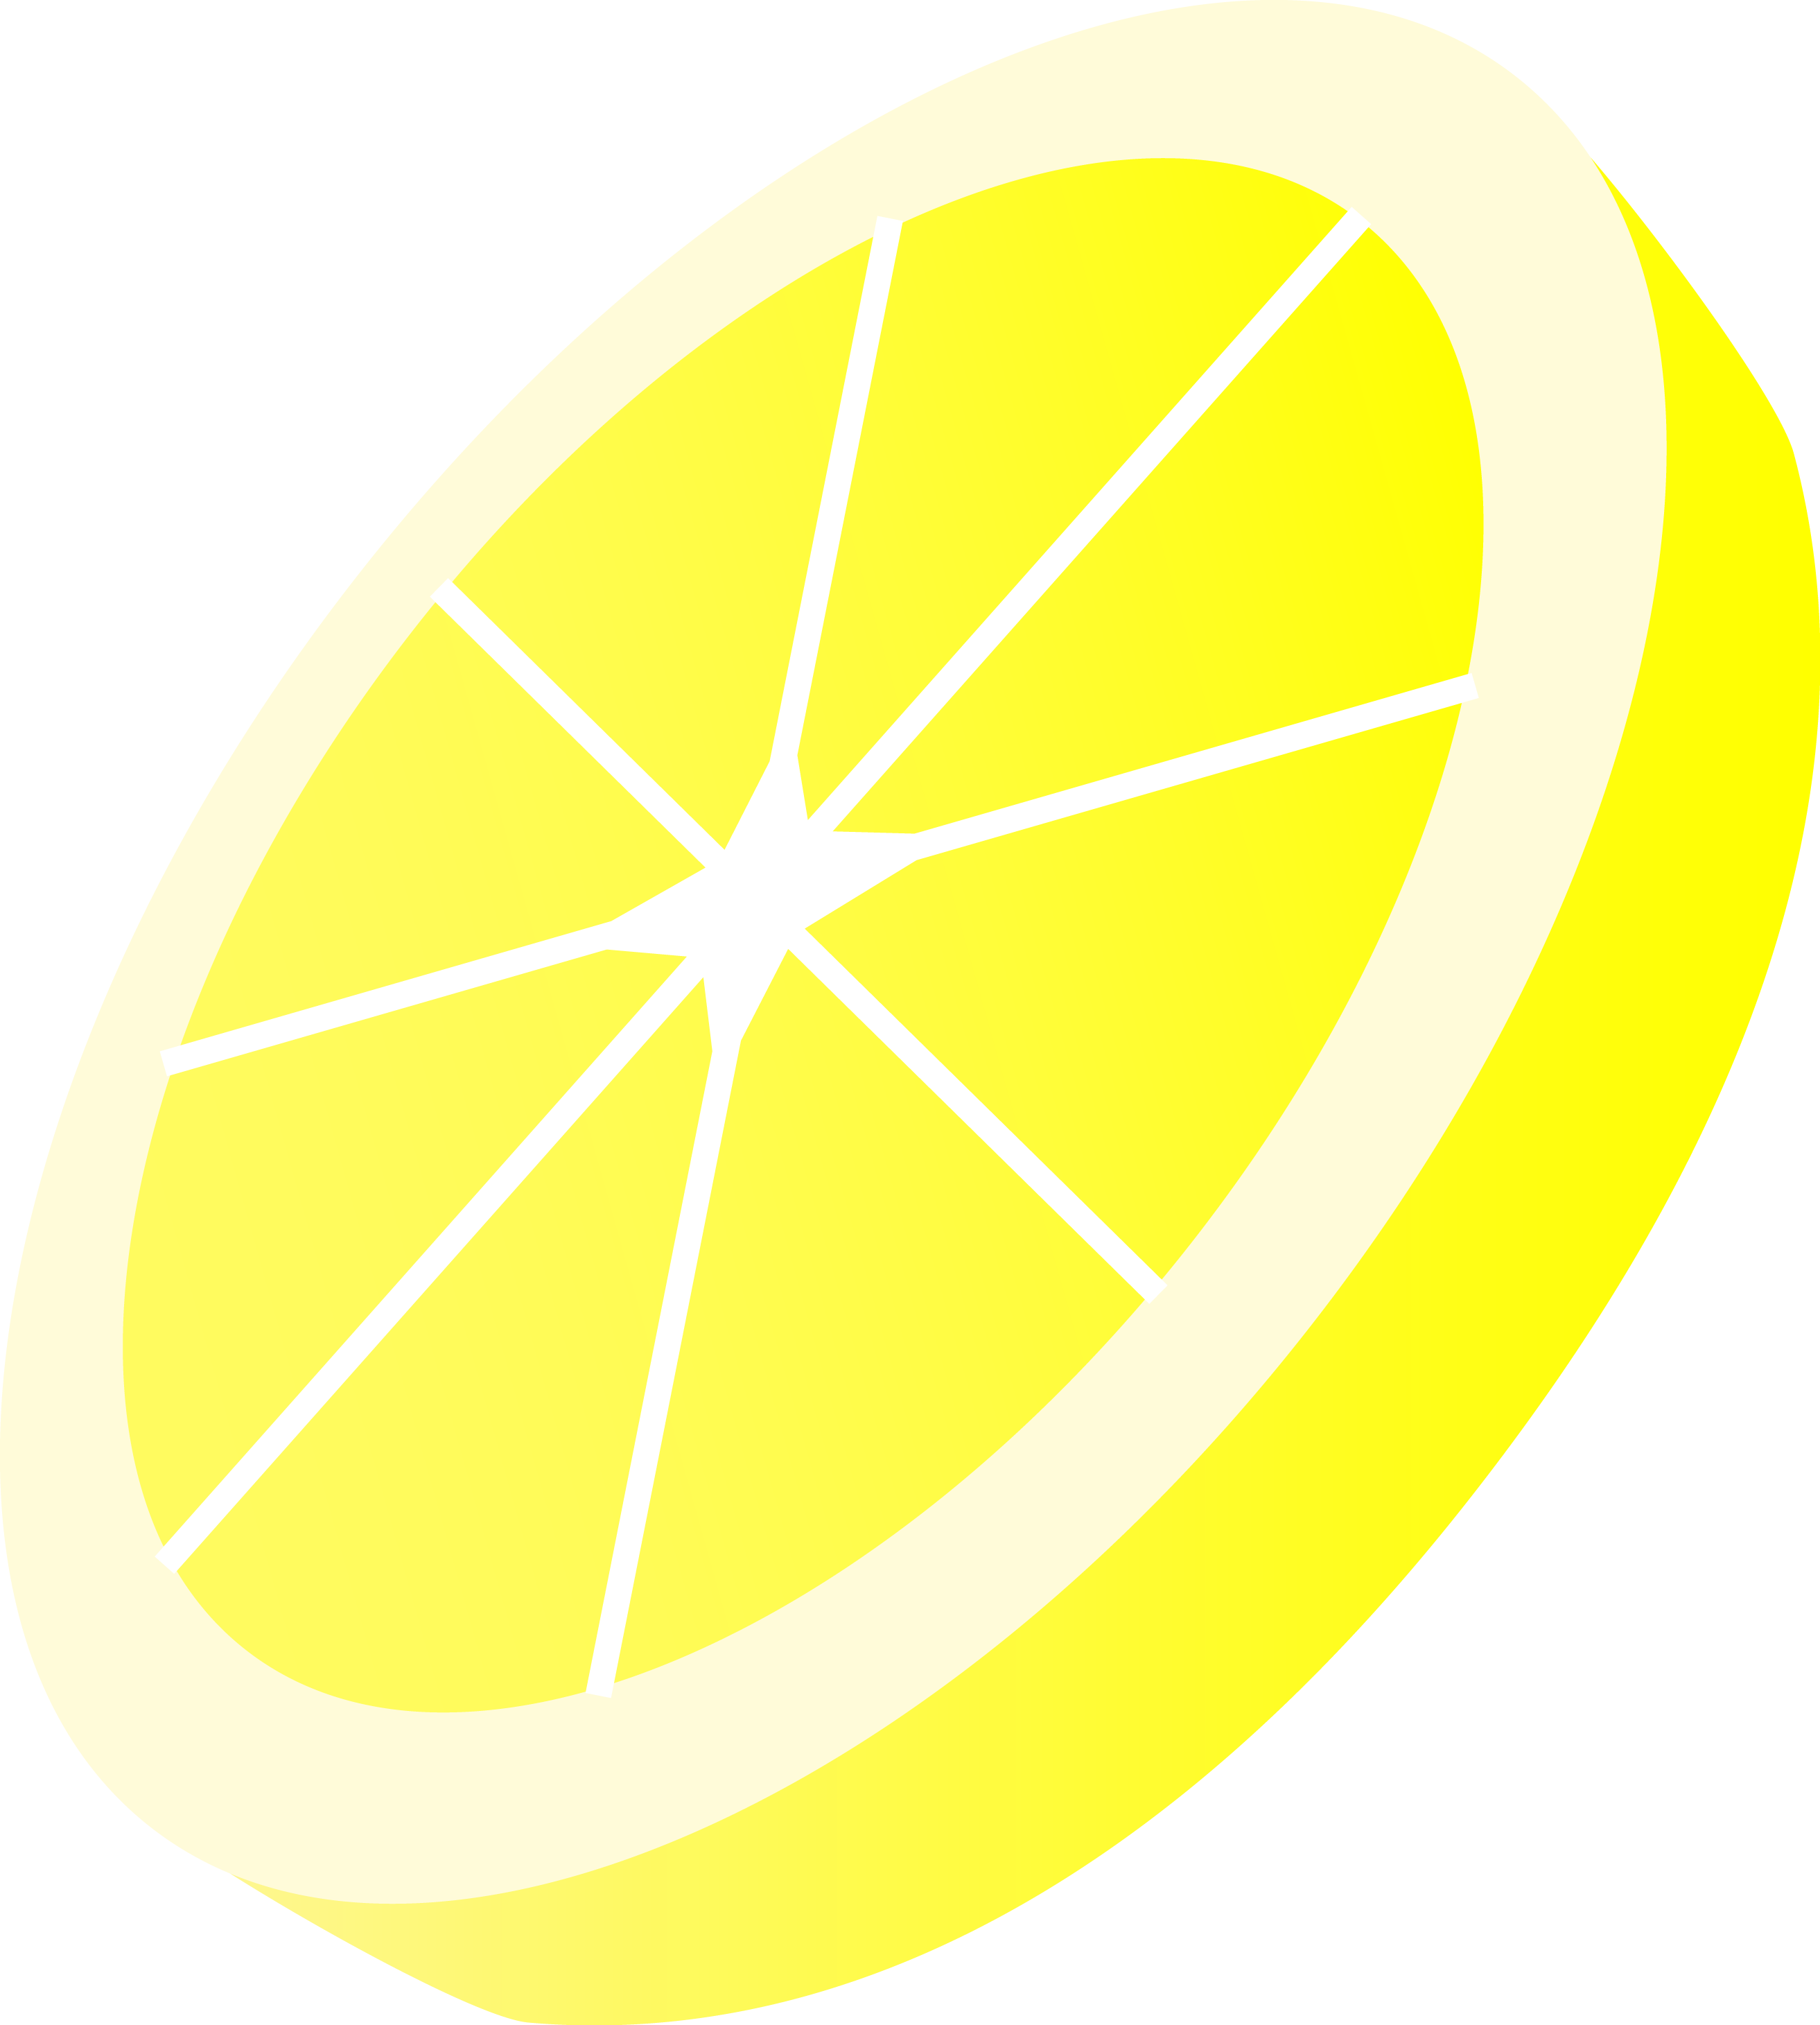 Drawing lemon slice. Round yellow free clip